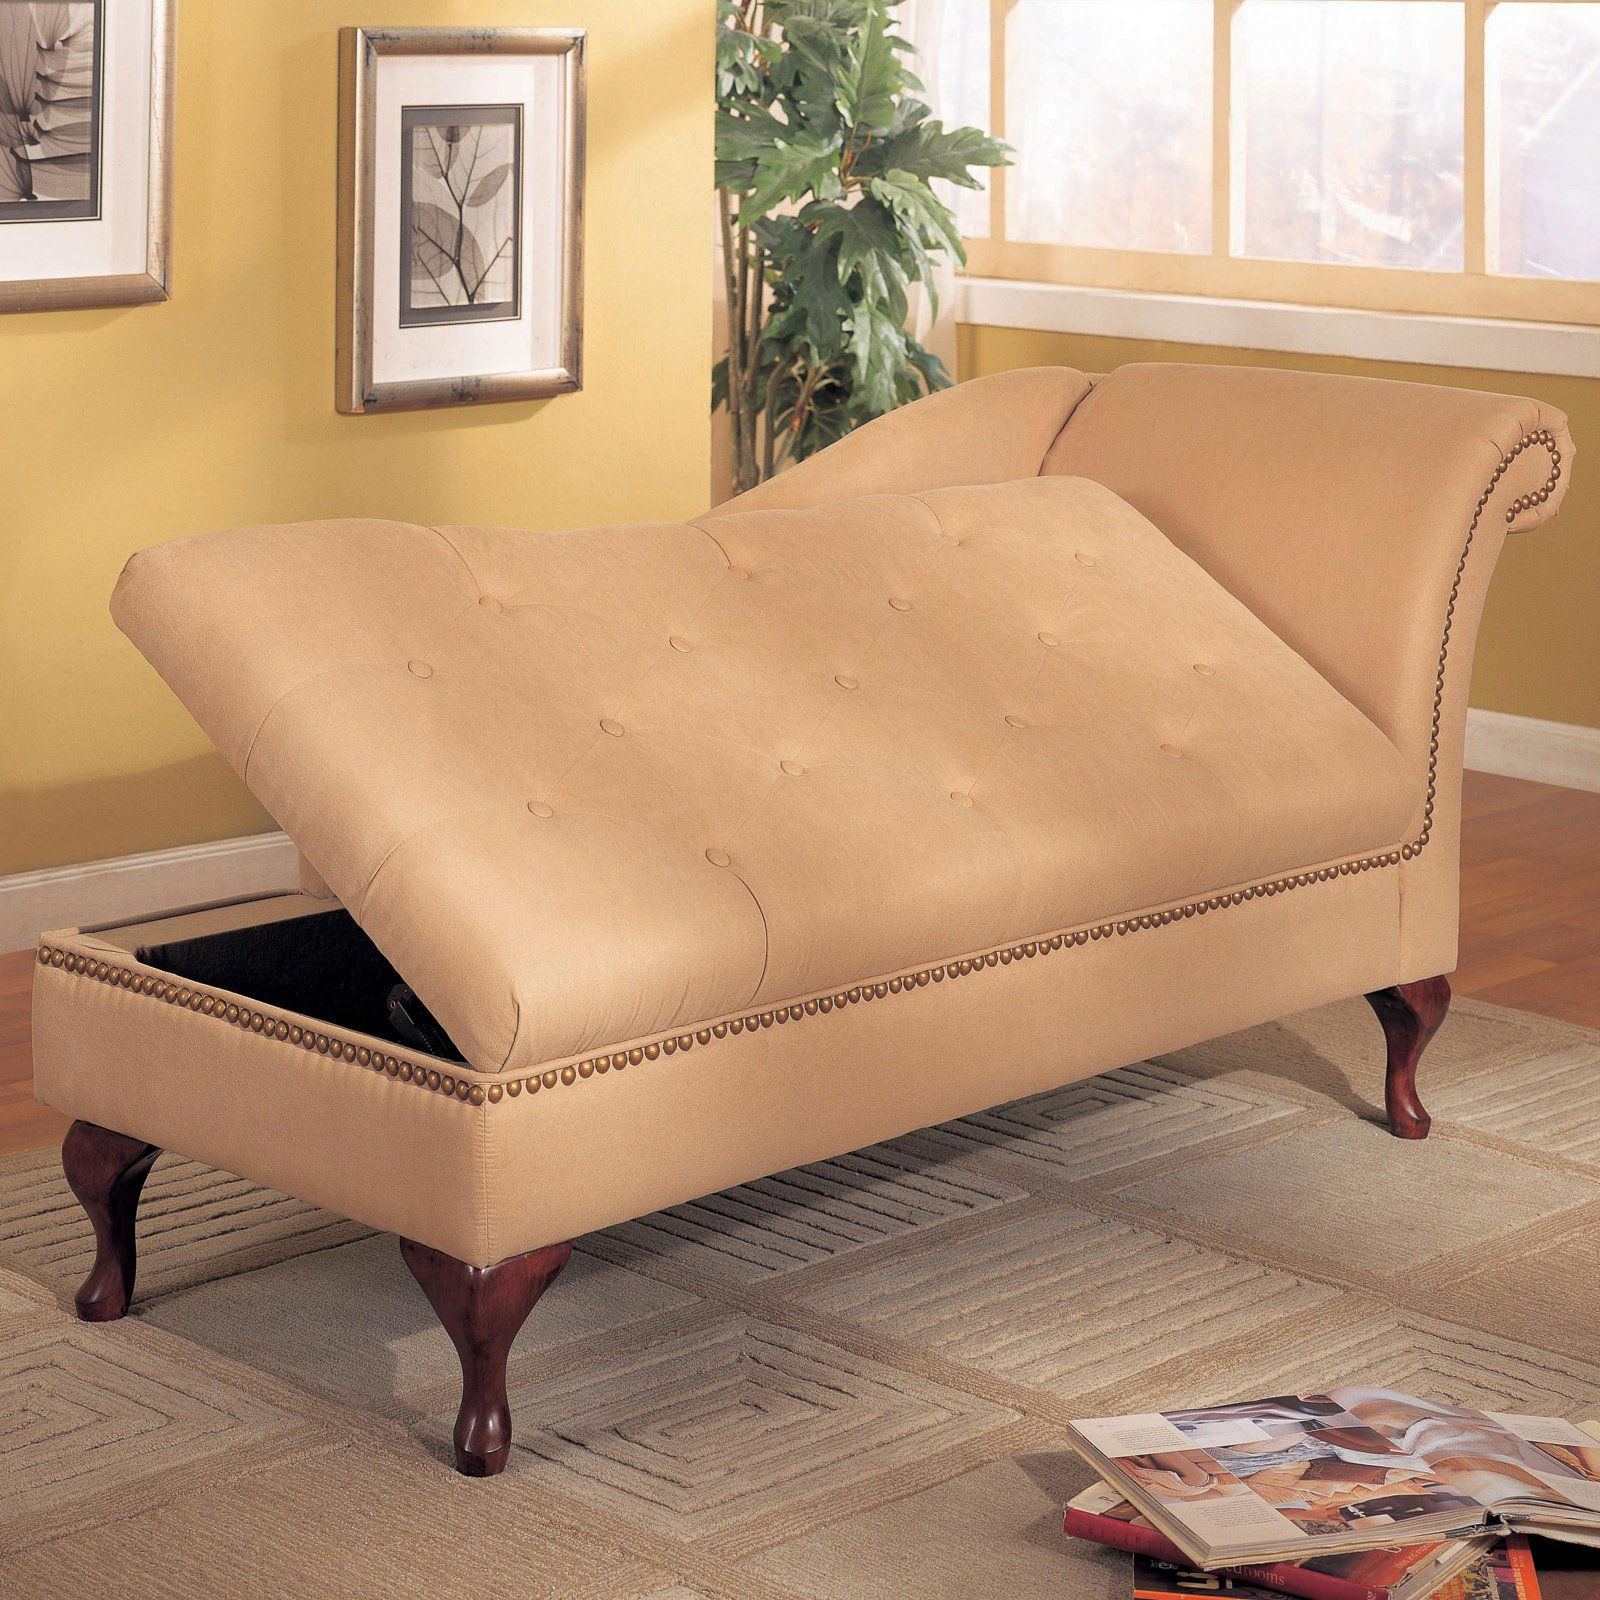 Indoor Chaise › Indoor Chaise Lounge With Storage Chaise Lounges ...